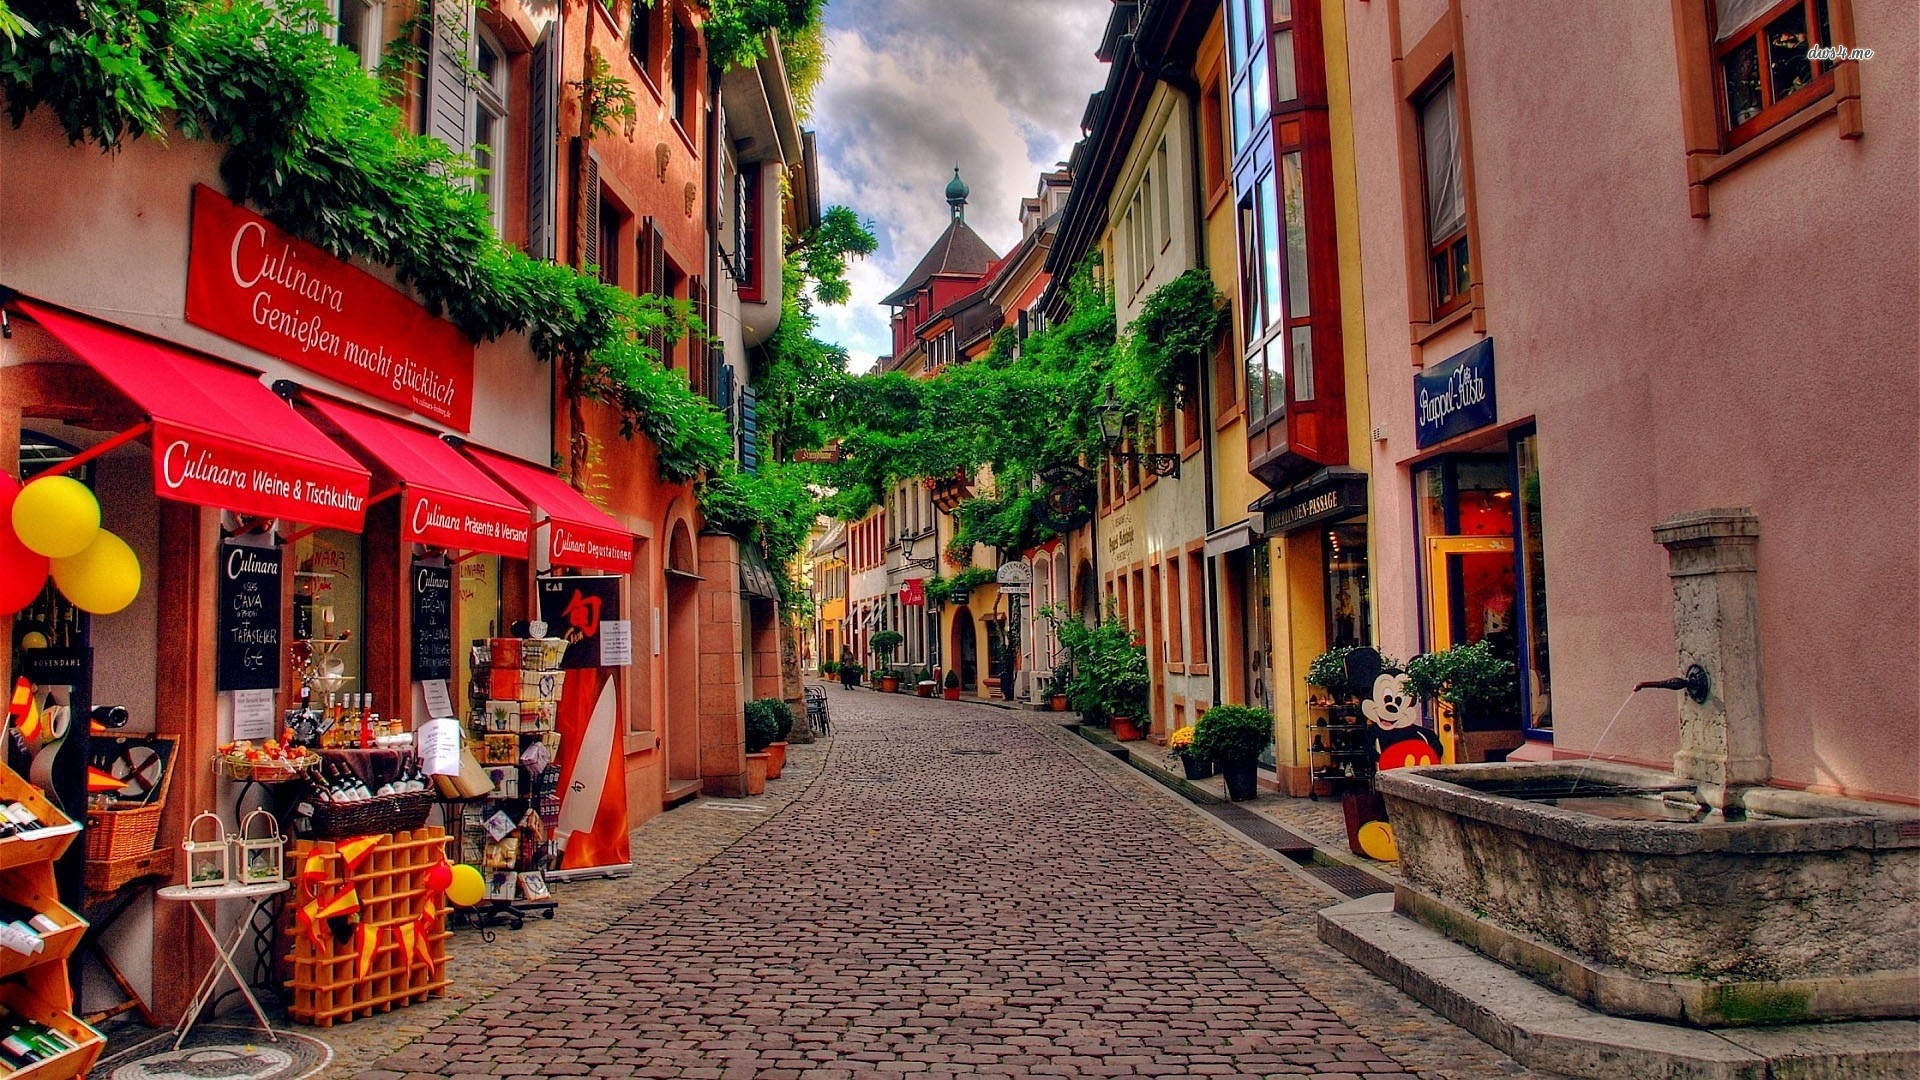 21062-narrow-street-in-freiburg-germany-1920x1080-world-wallpaper.jpg